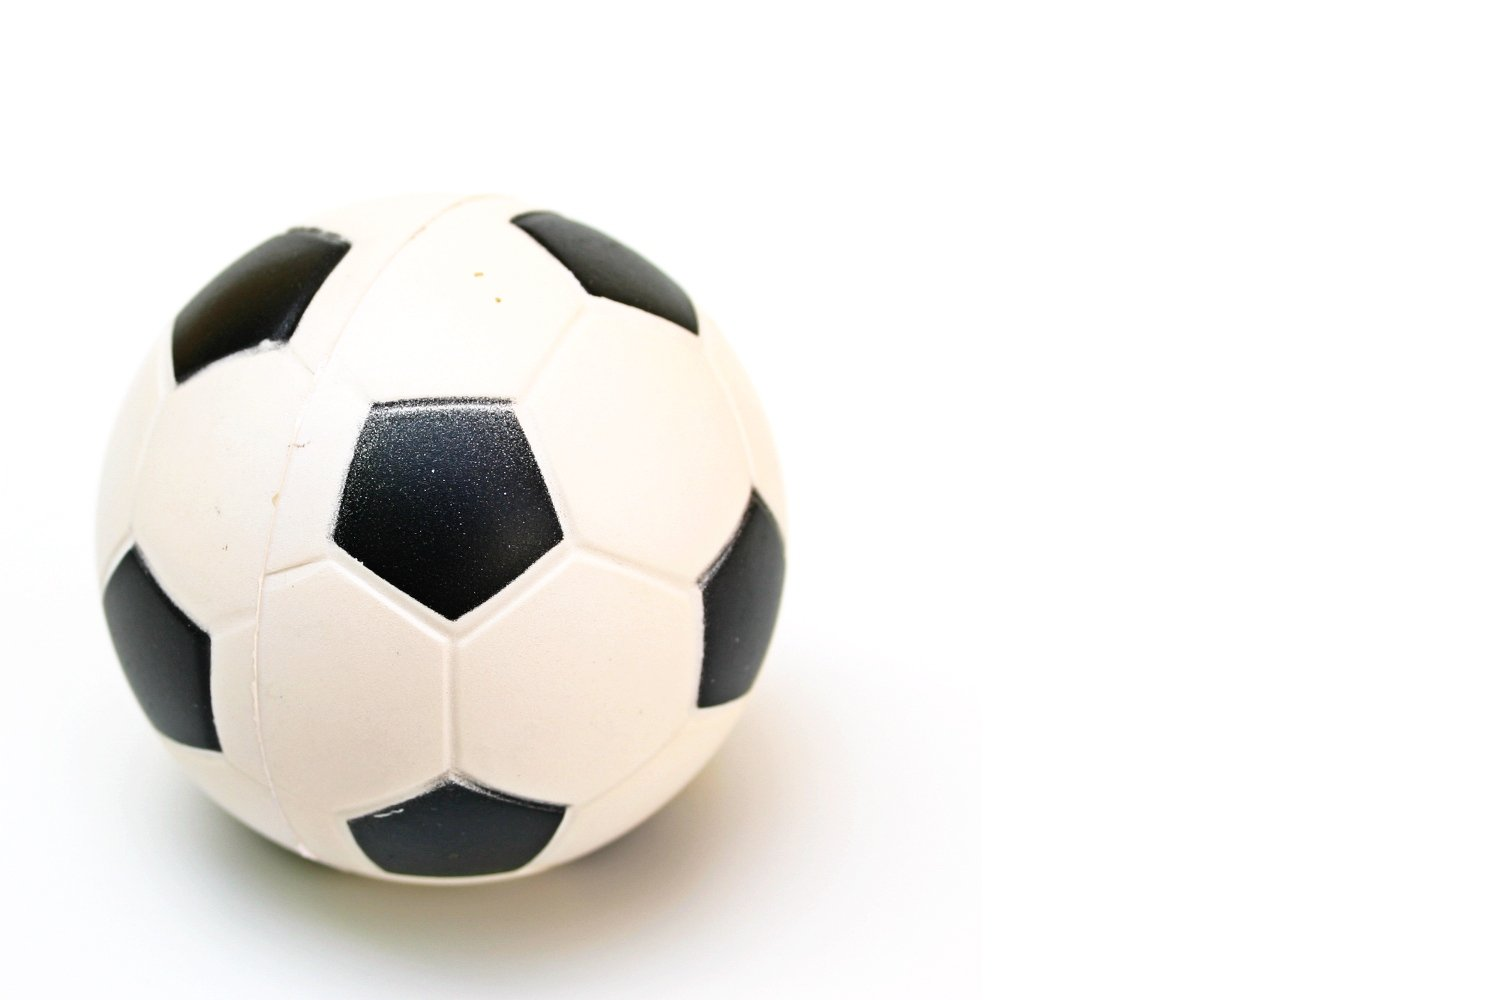 Soccer ball, Activity, Shape, Leisure, Object, HQ Photo